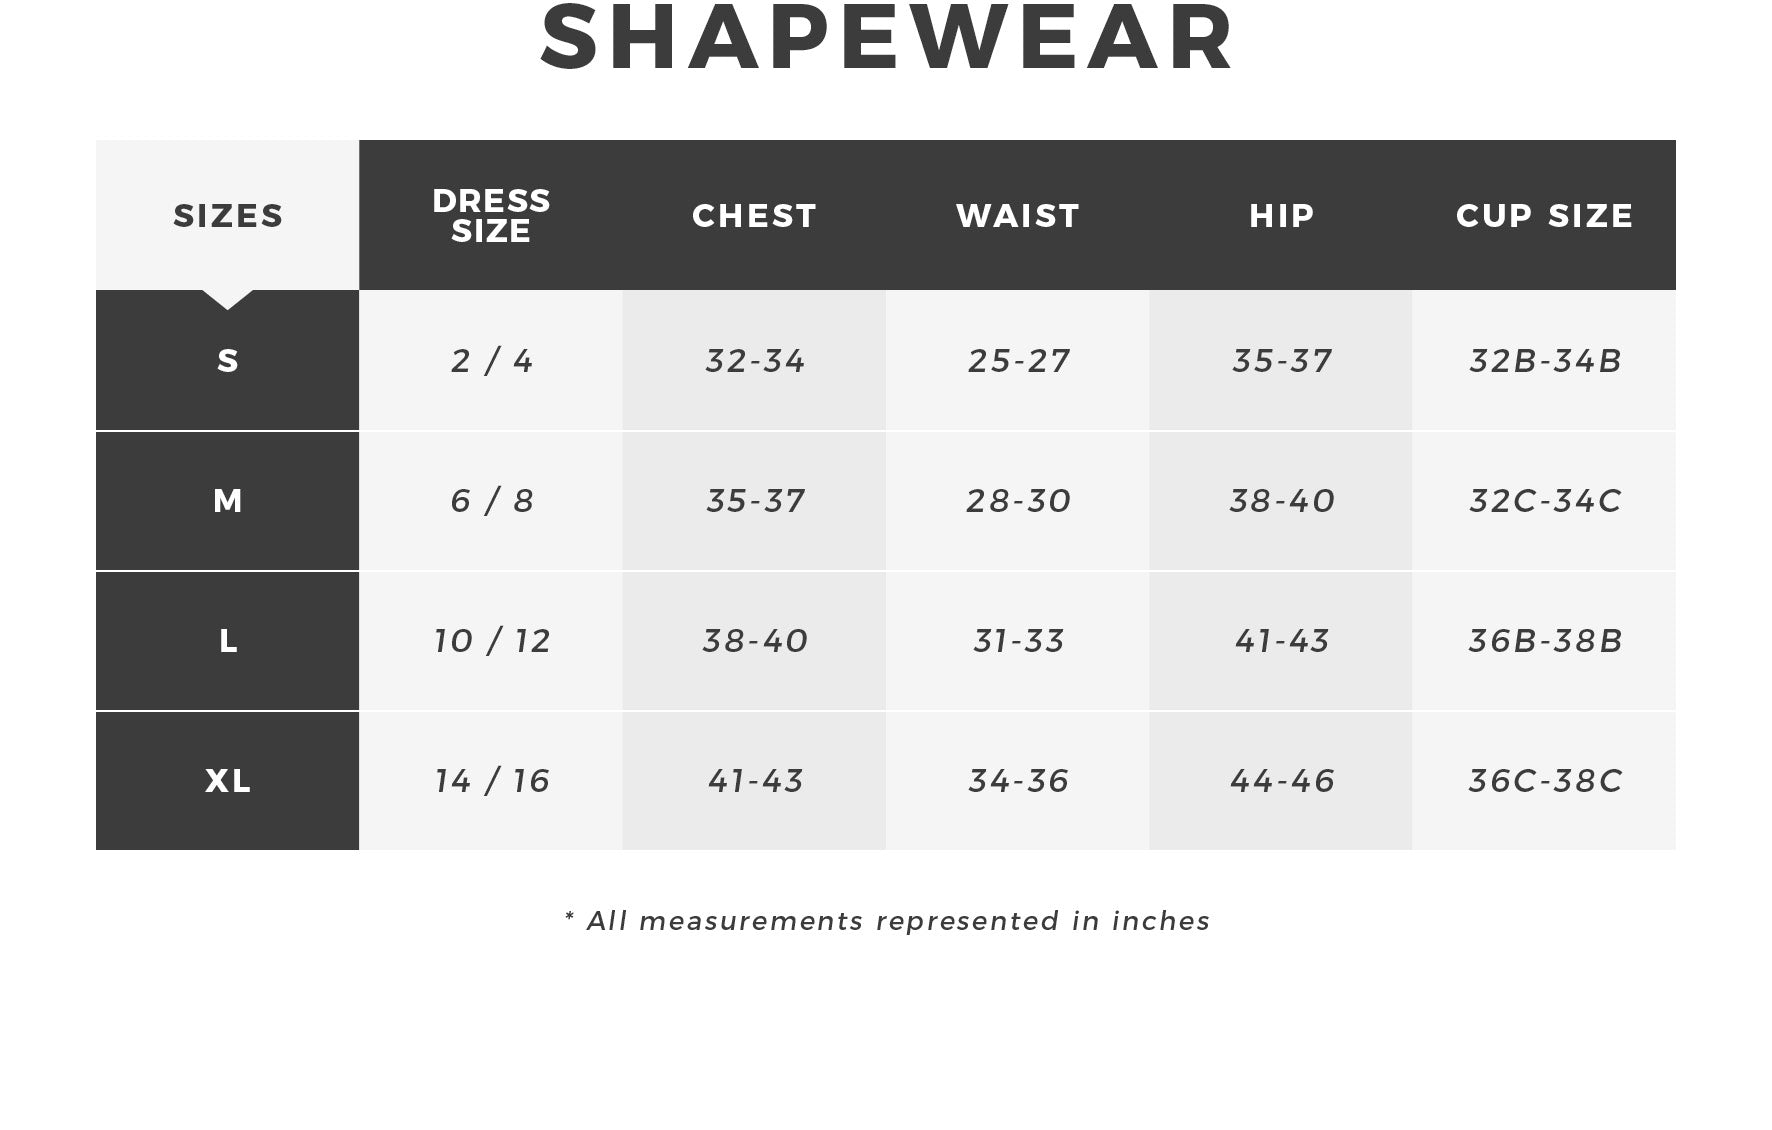 Urban Planet - Women's Shapewear Size Guide